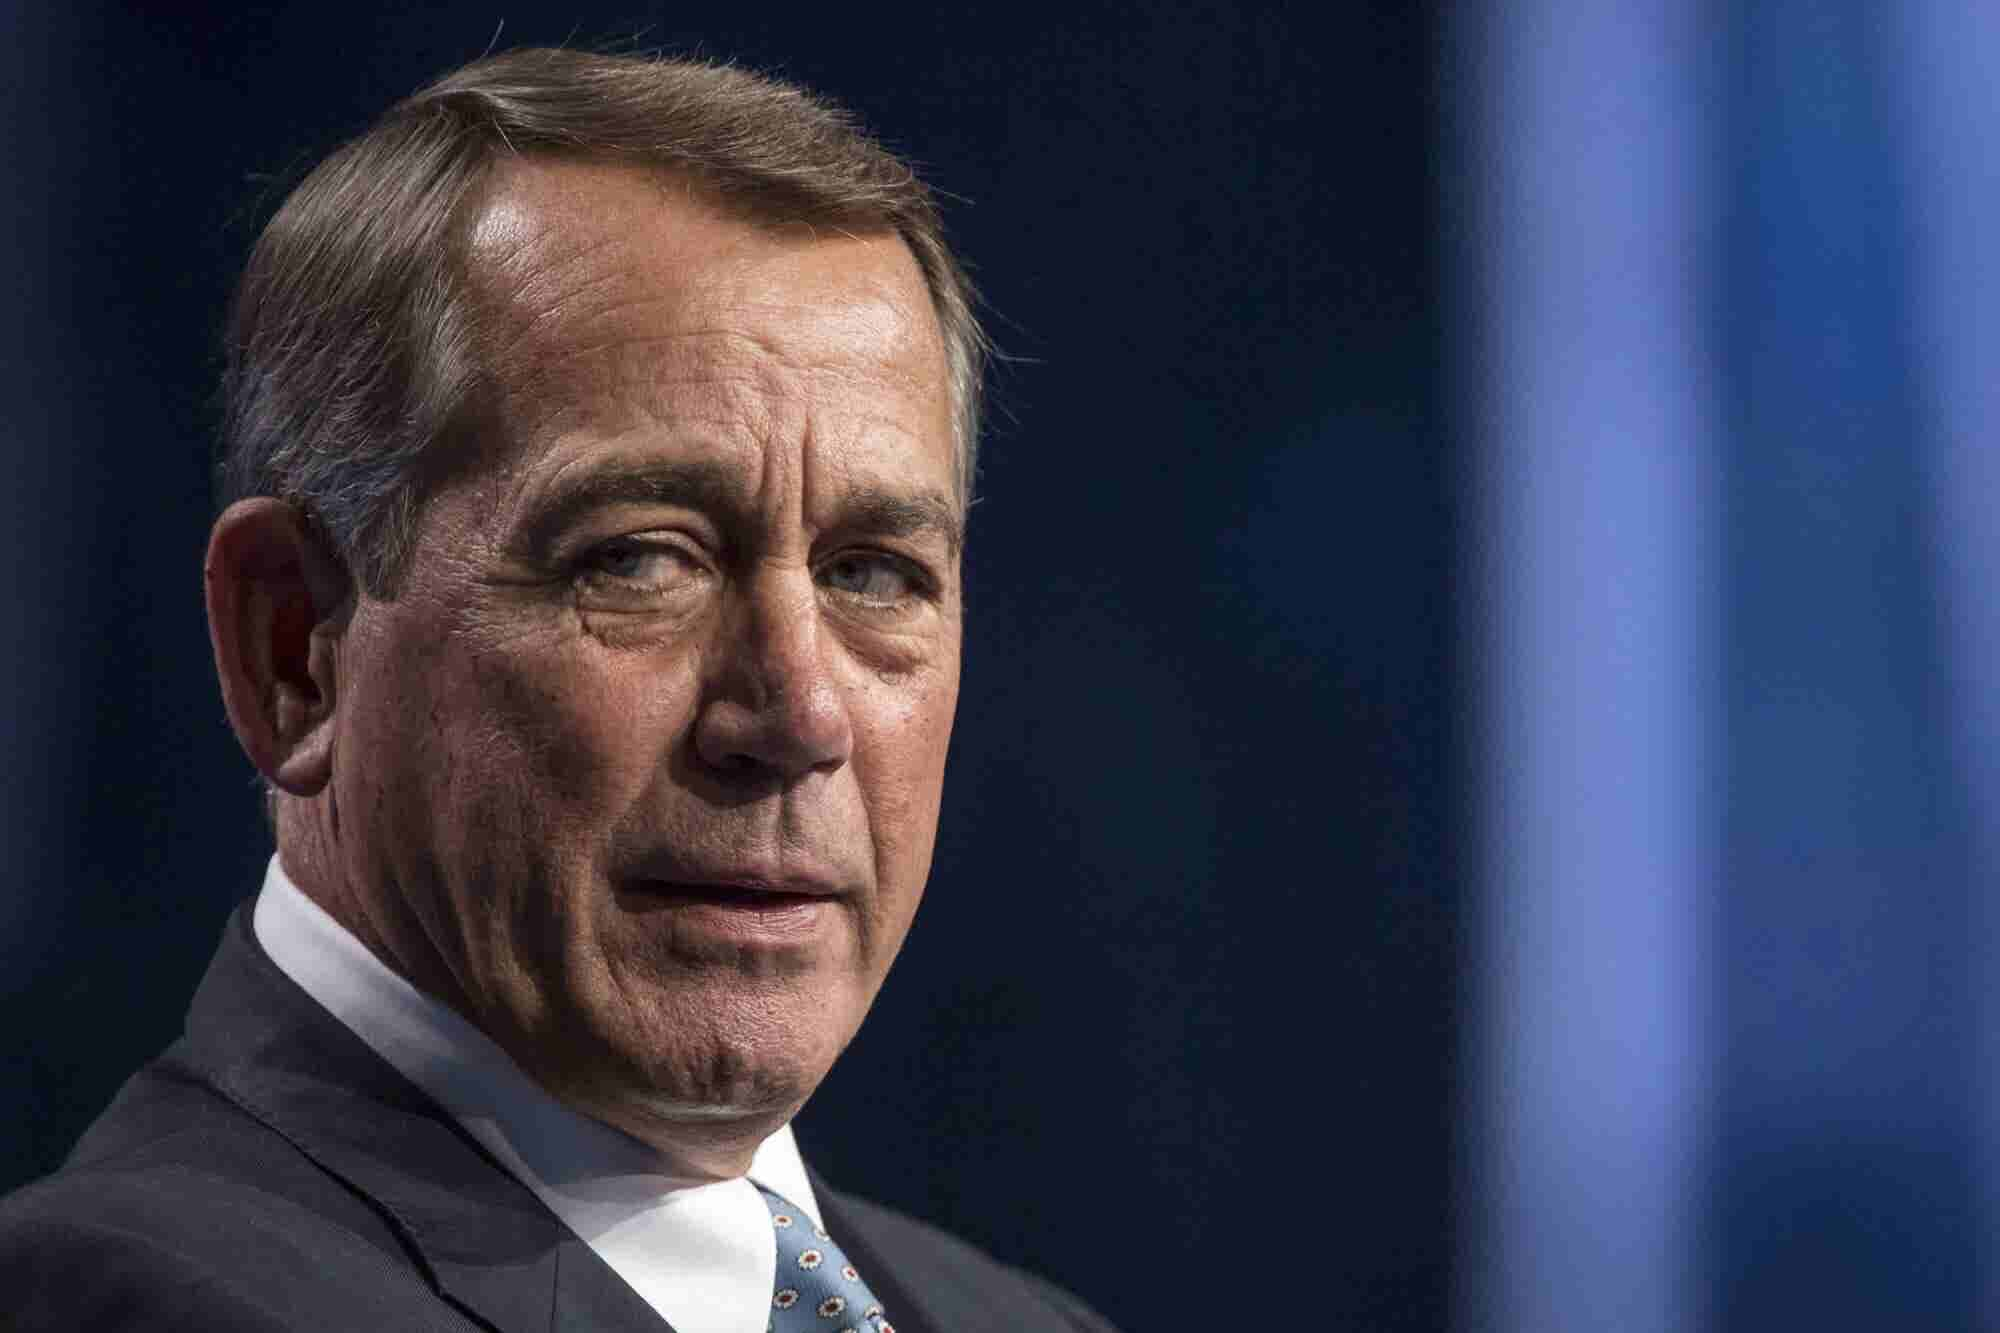 The Cannabis Industry Is Embracing John Boehner as Reluctantly as He Is Embracing Cannabis